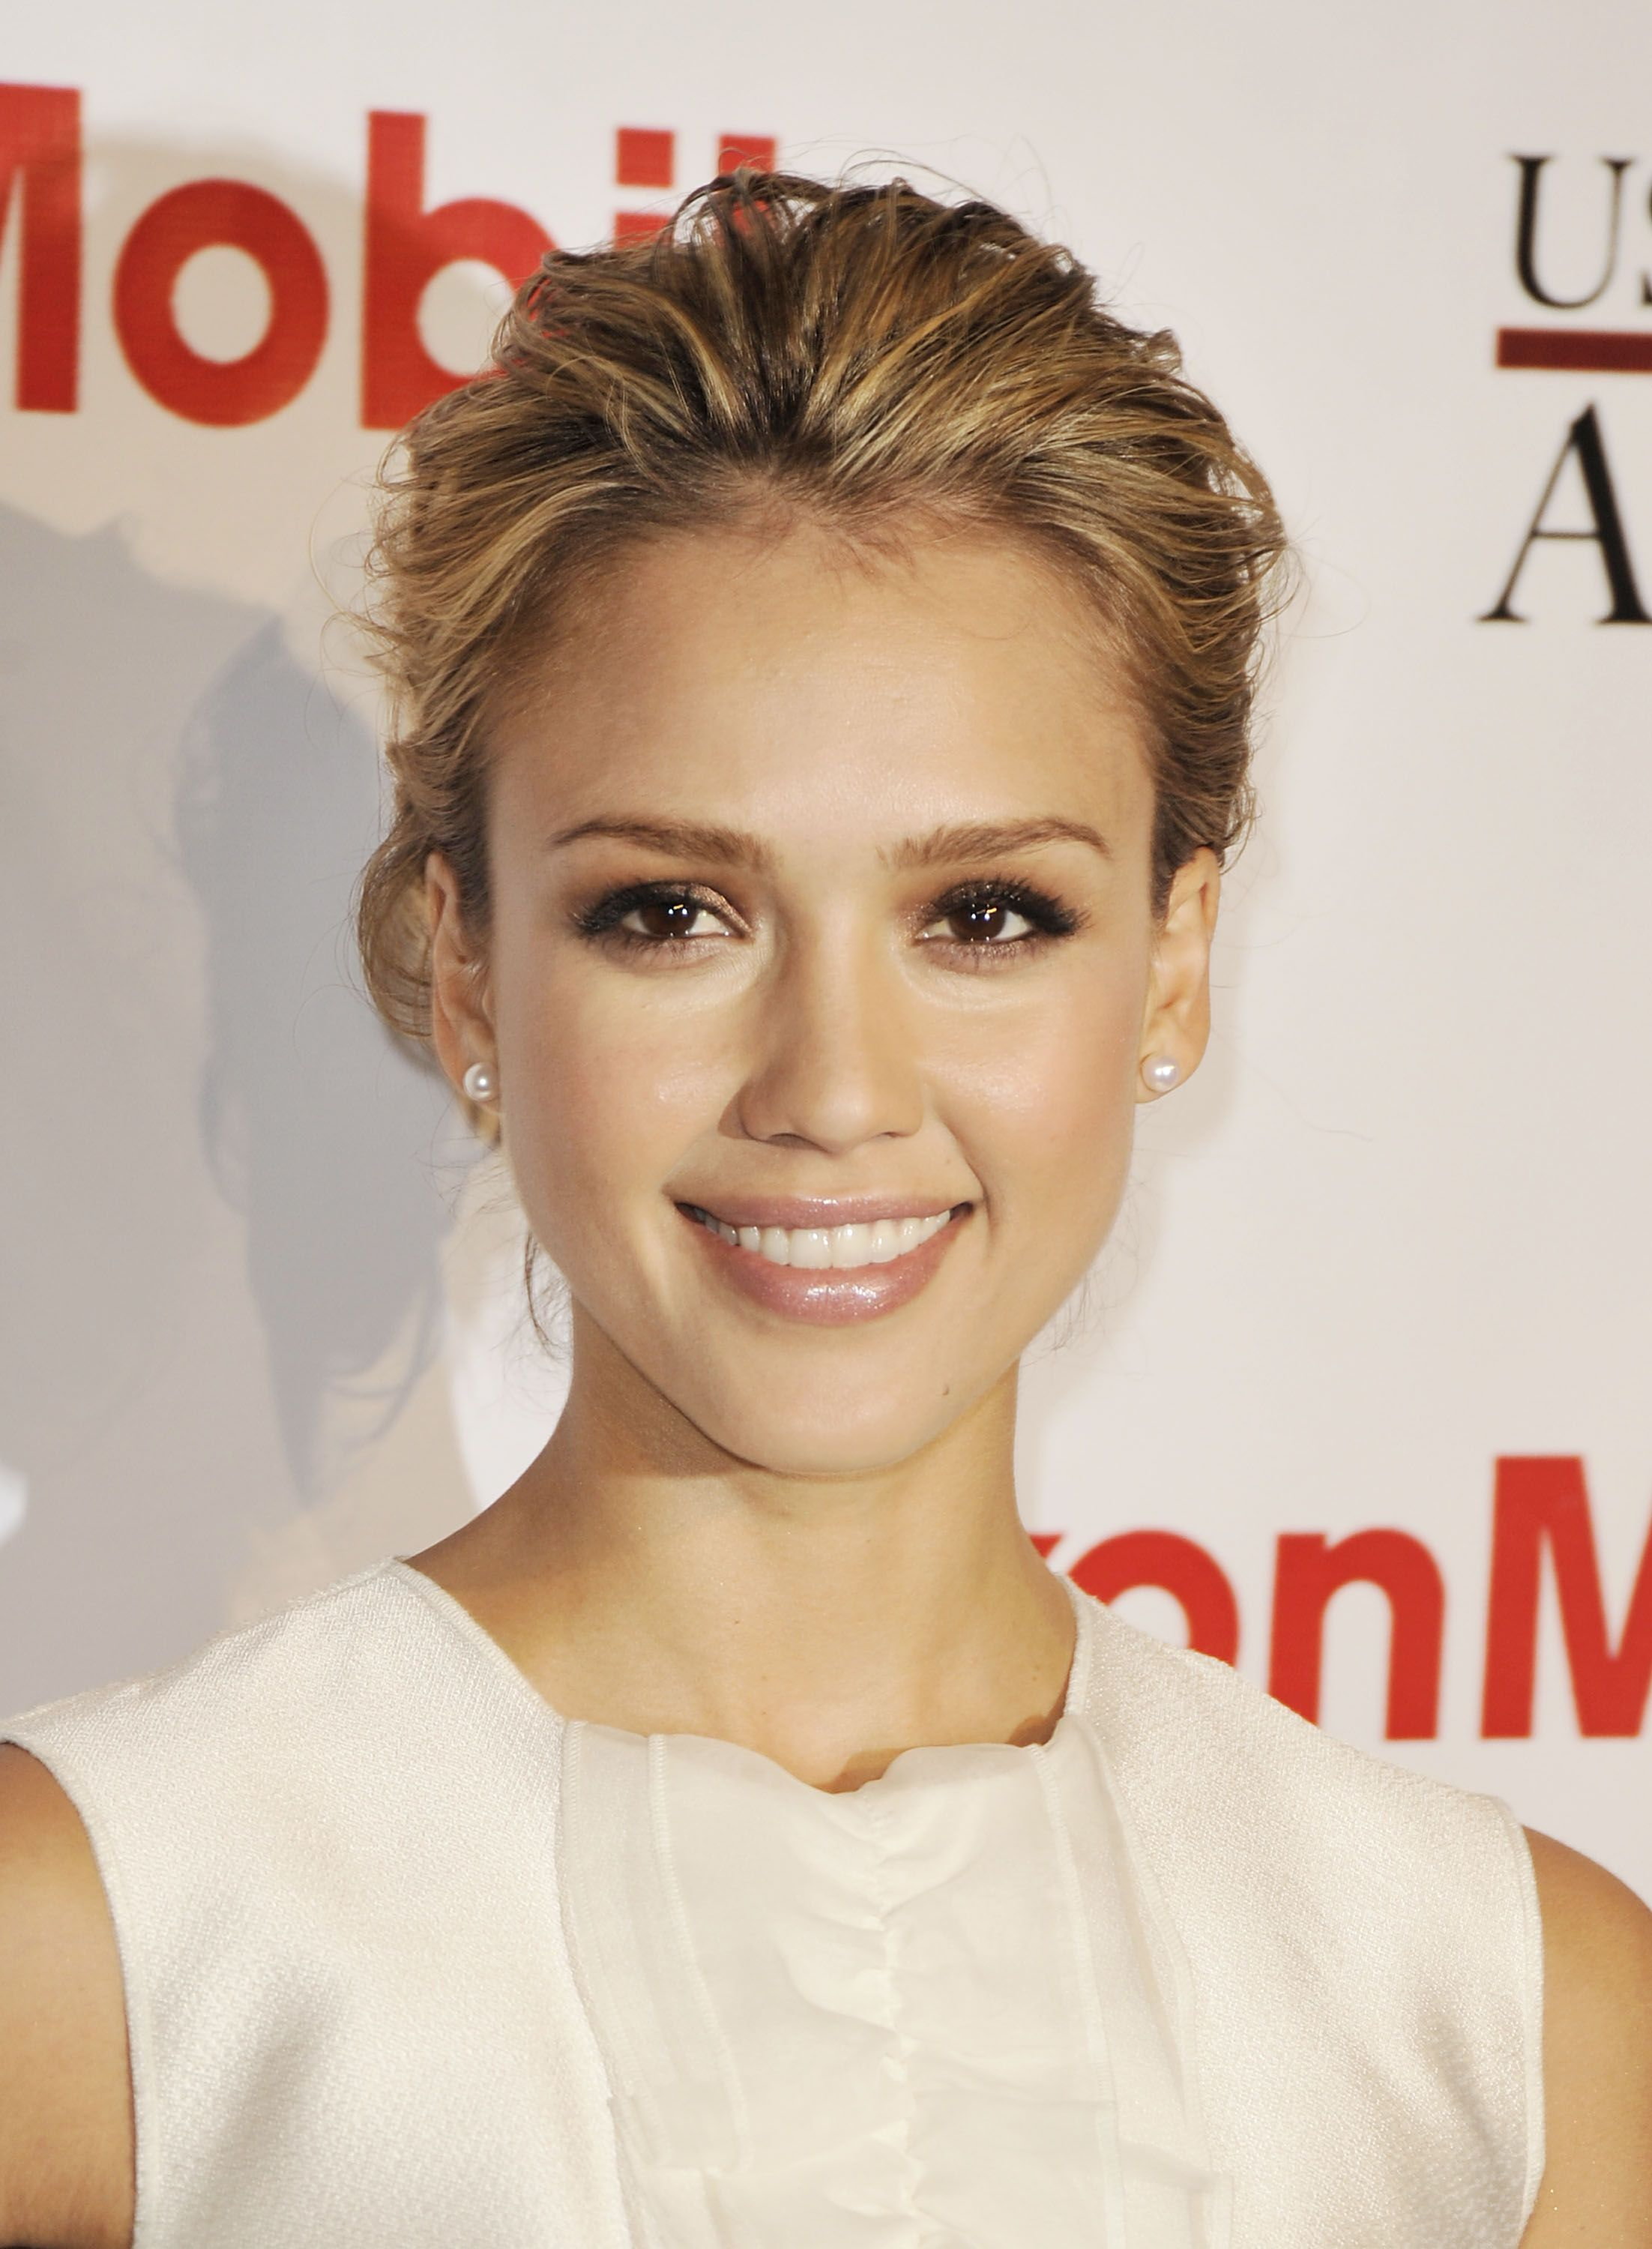 Jessica Alba Updo Hairstyles I Love The Look Of This Updo From The Front Loose But Polished